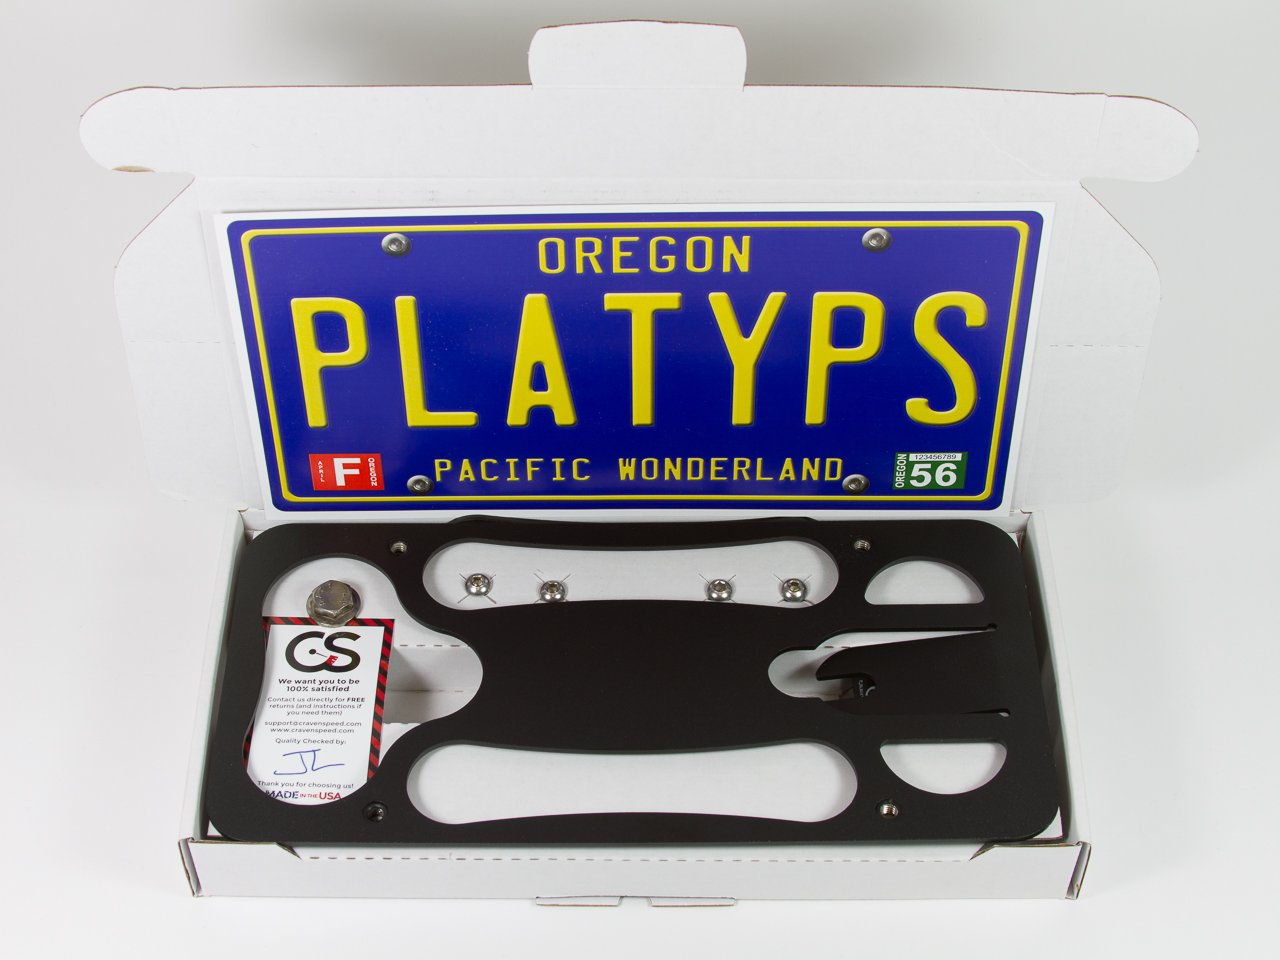 CravenSpeed The Platypus License Plate Mount for Mini Cooper (F56) 2014-2019 | No Drilling | Installs in Seconds | Made of Stainless Steel & Aluminum | Made in USA by CravenSpeed (Image #3)